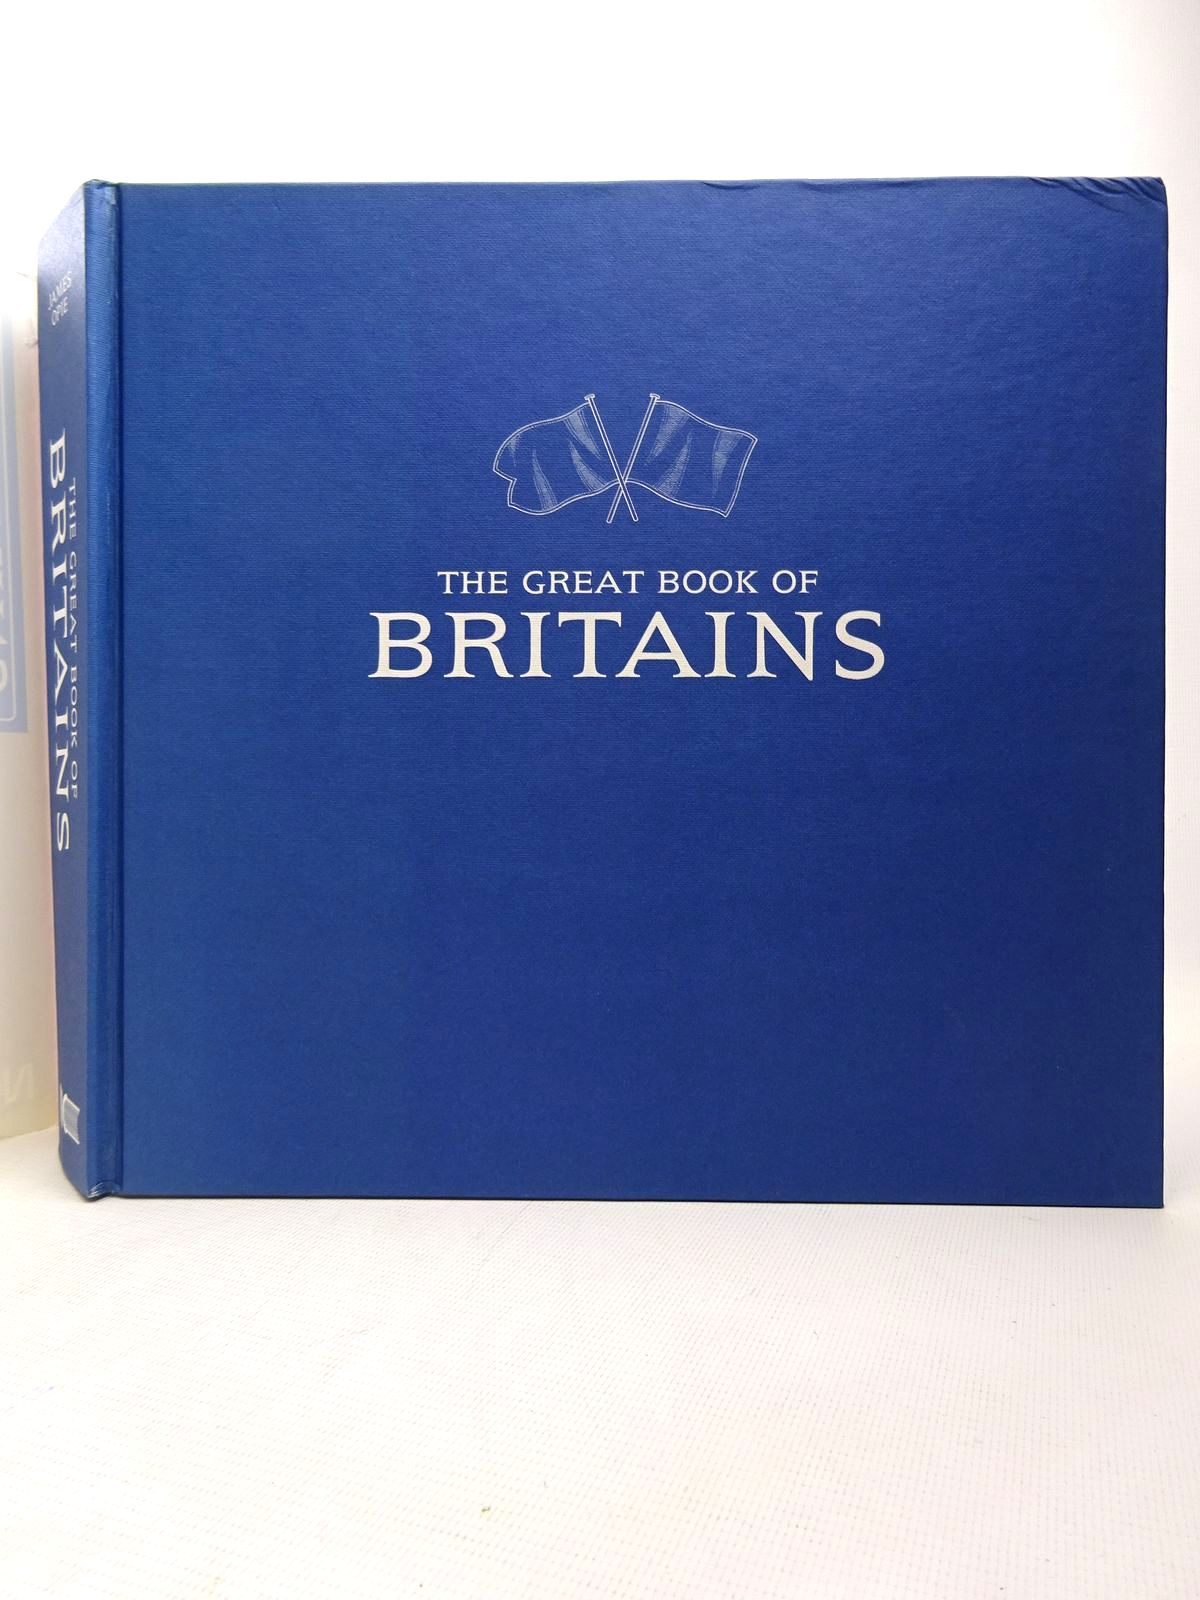 Photo of THE GREAT BOOK OF BRITAINS: 100 YEARS OF BRITAINS TOY SOLDIERS 1893-1993 written by Opie, James published by New Cavendish Books (STOCK CODE: 1816909)  for sale by Stella & Rose's Books